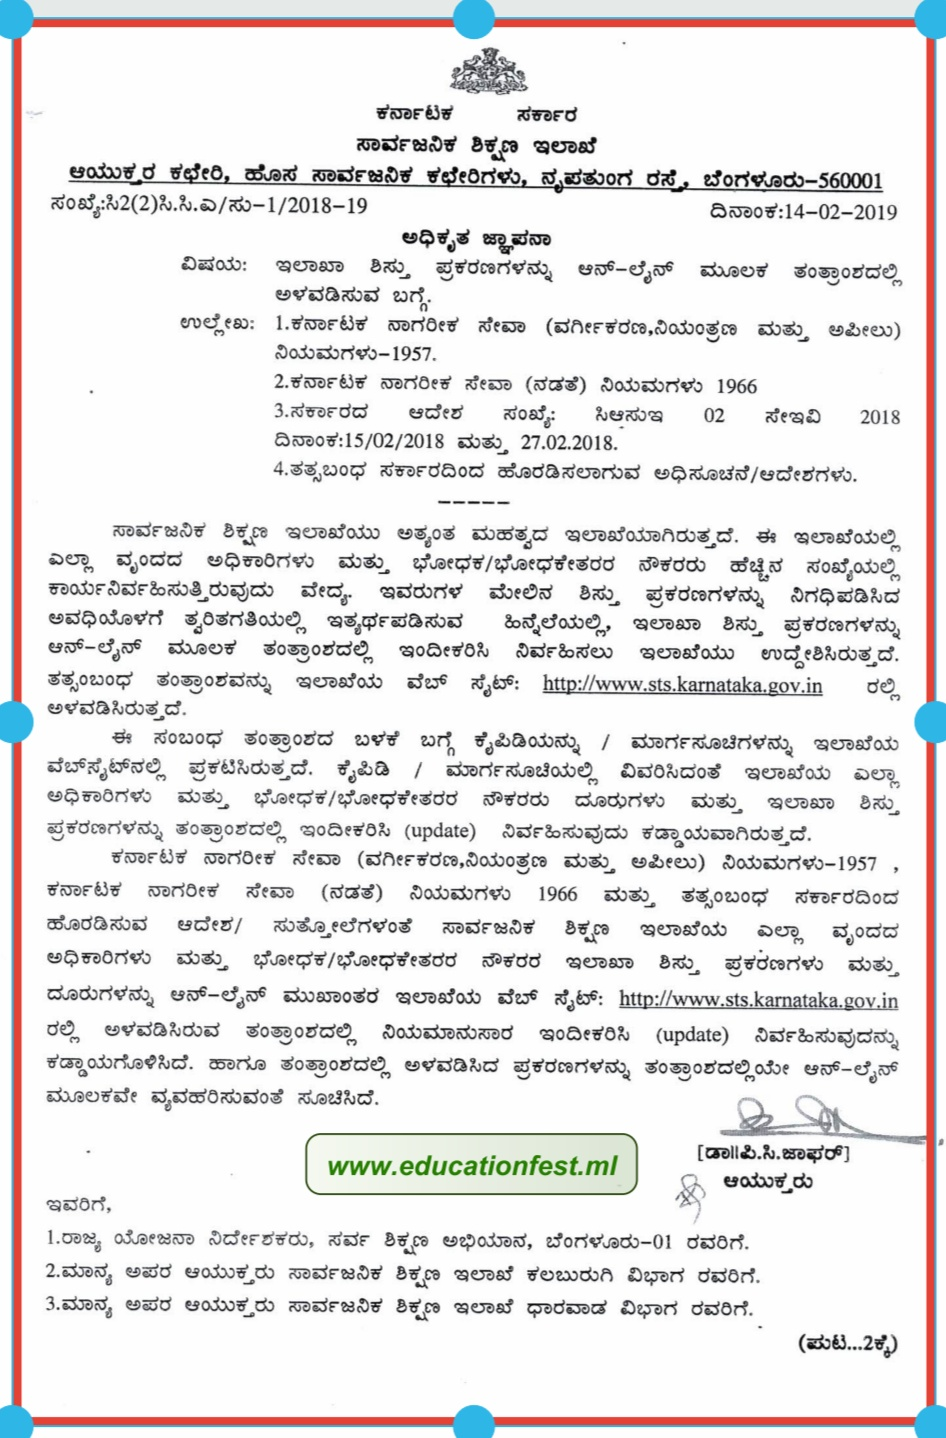 Registration of online complaints and enquires of education's department teaching and noon teaching posts